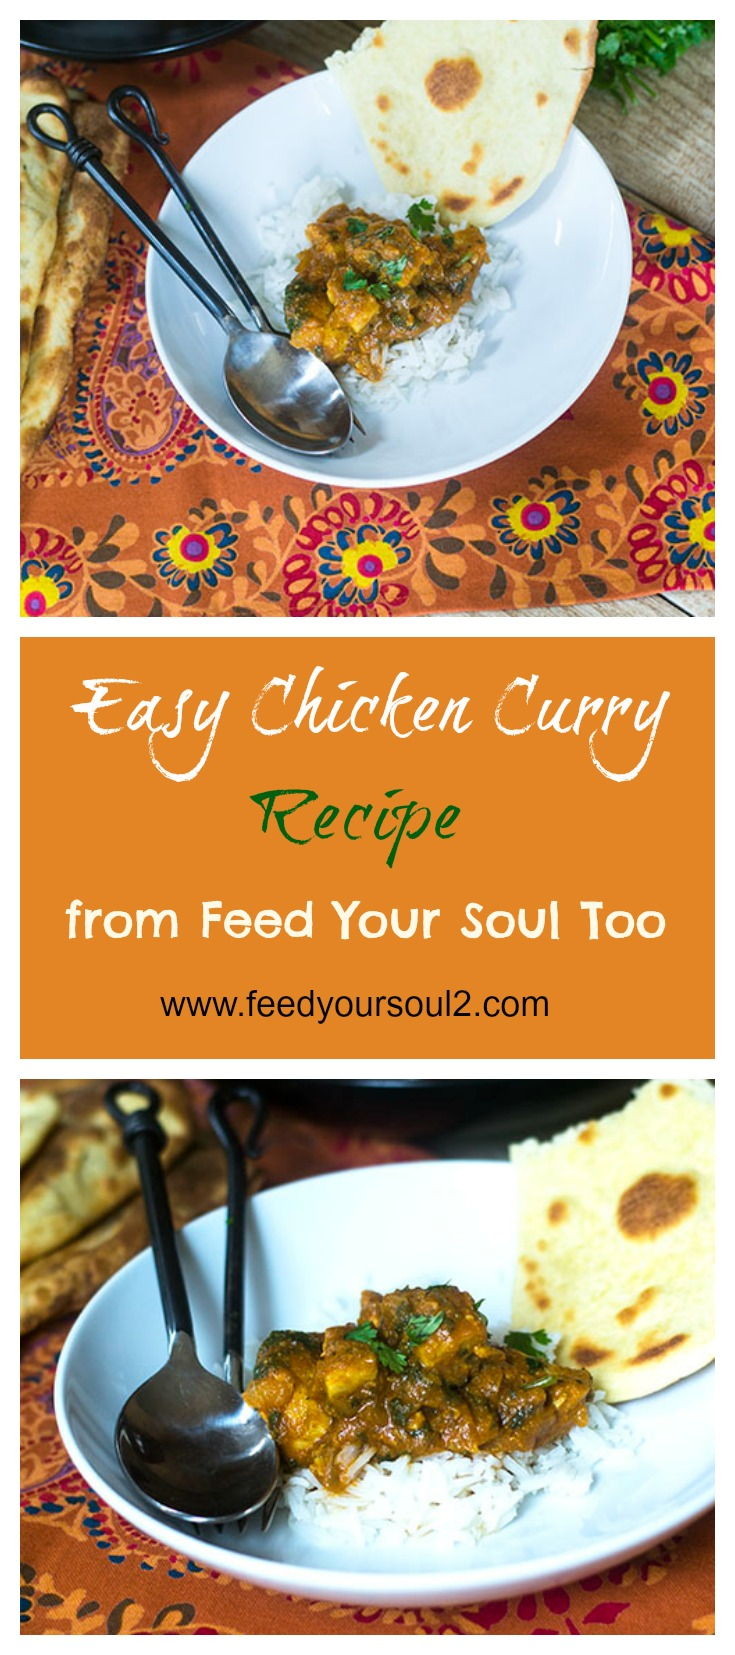 Easy Chicken Curry Recipe #Indianfood #glutenfree #curry | feedyoursoul2.com